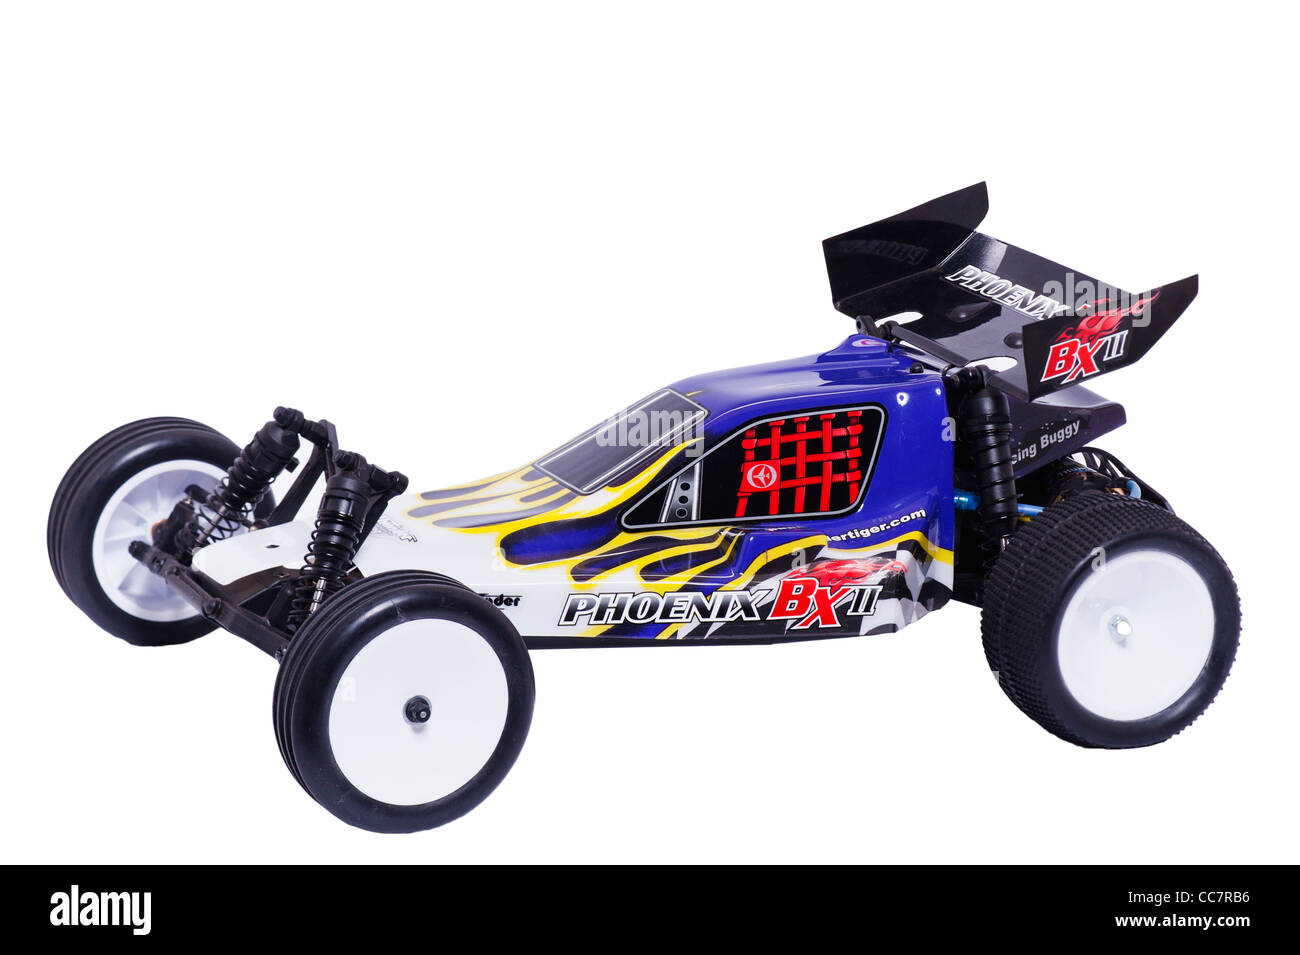 A radio controlled Phoenix BX off road buggy car on a white background - Stock Image